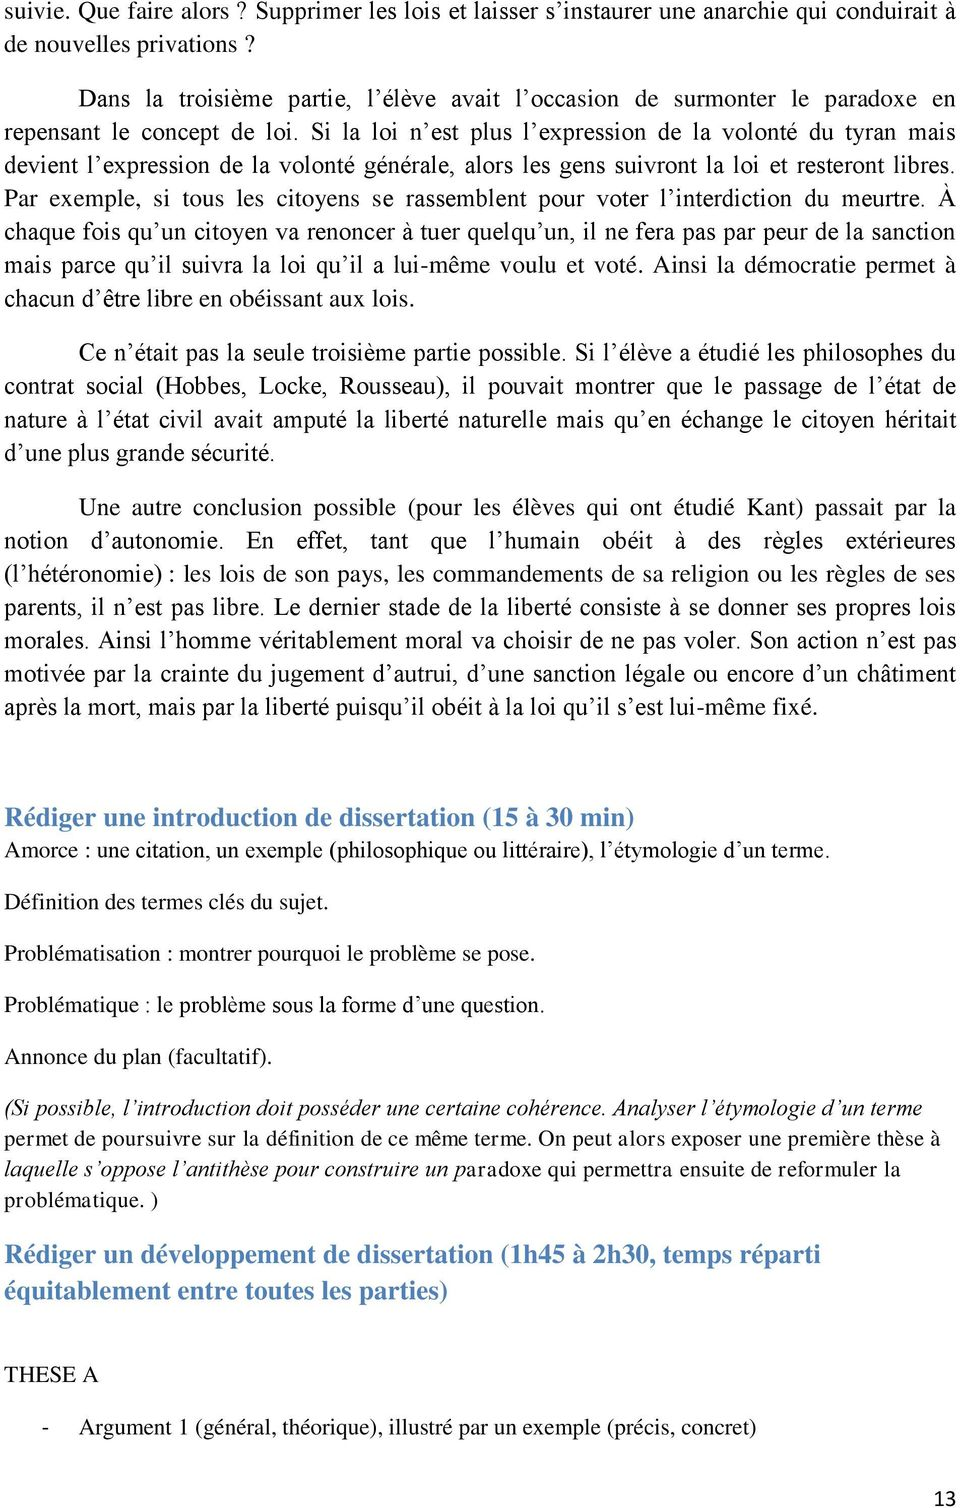 Comment Faire Un Plan De Dissertation De Philo